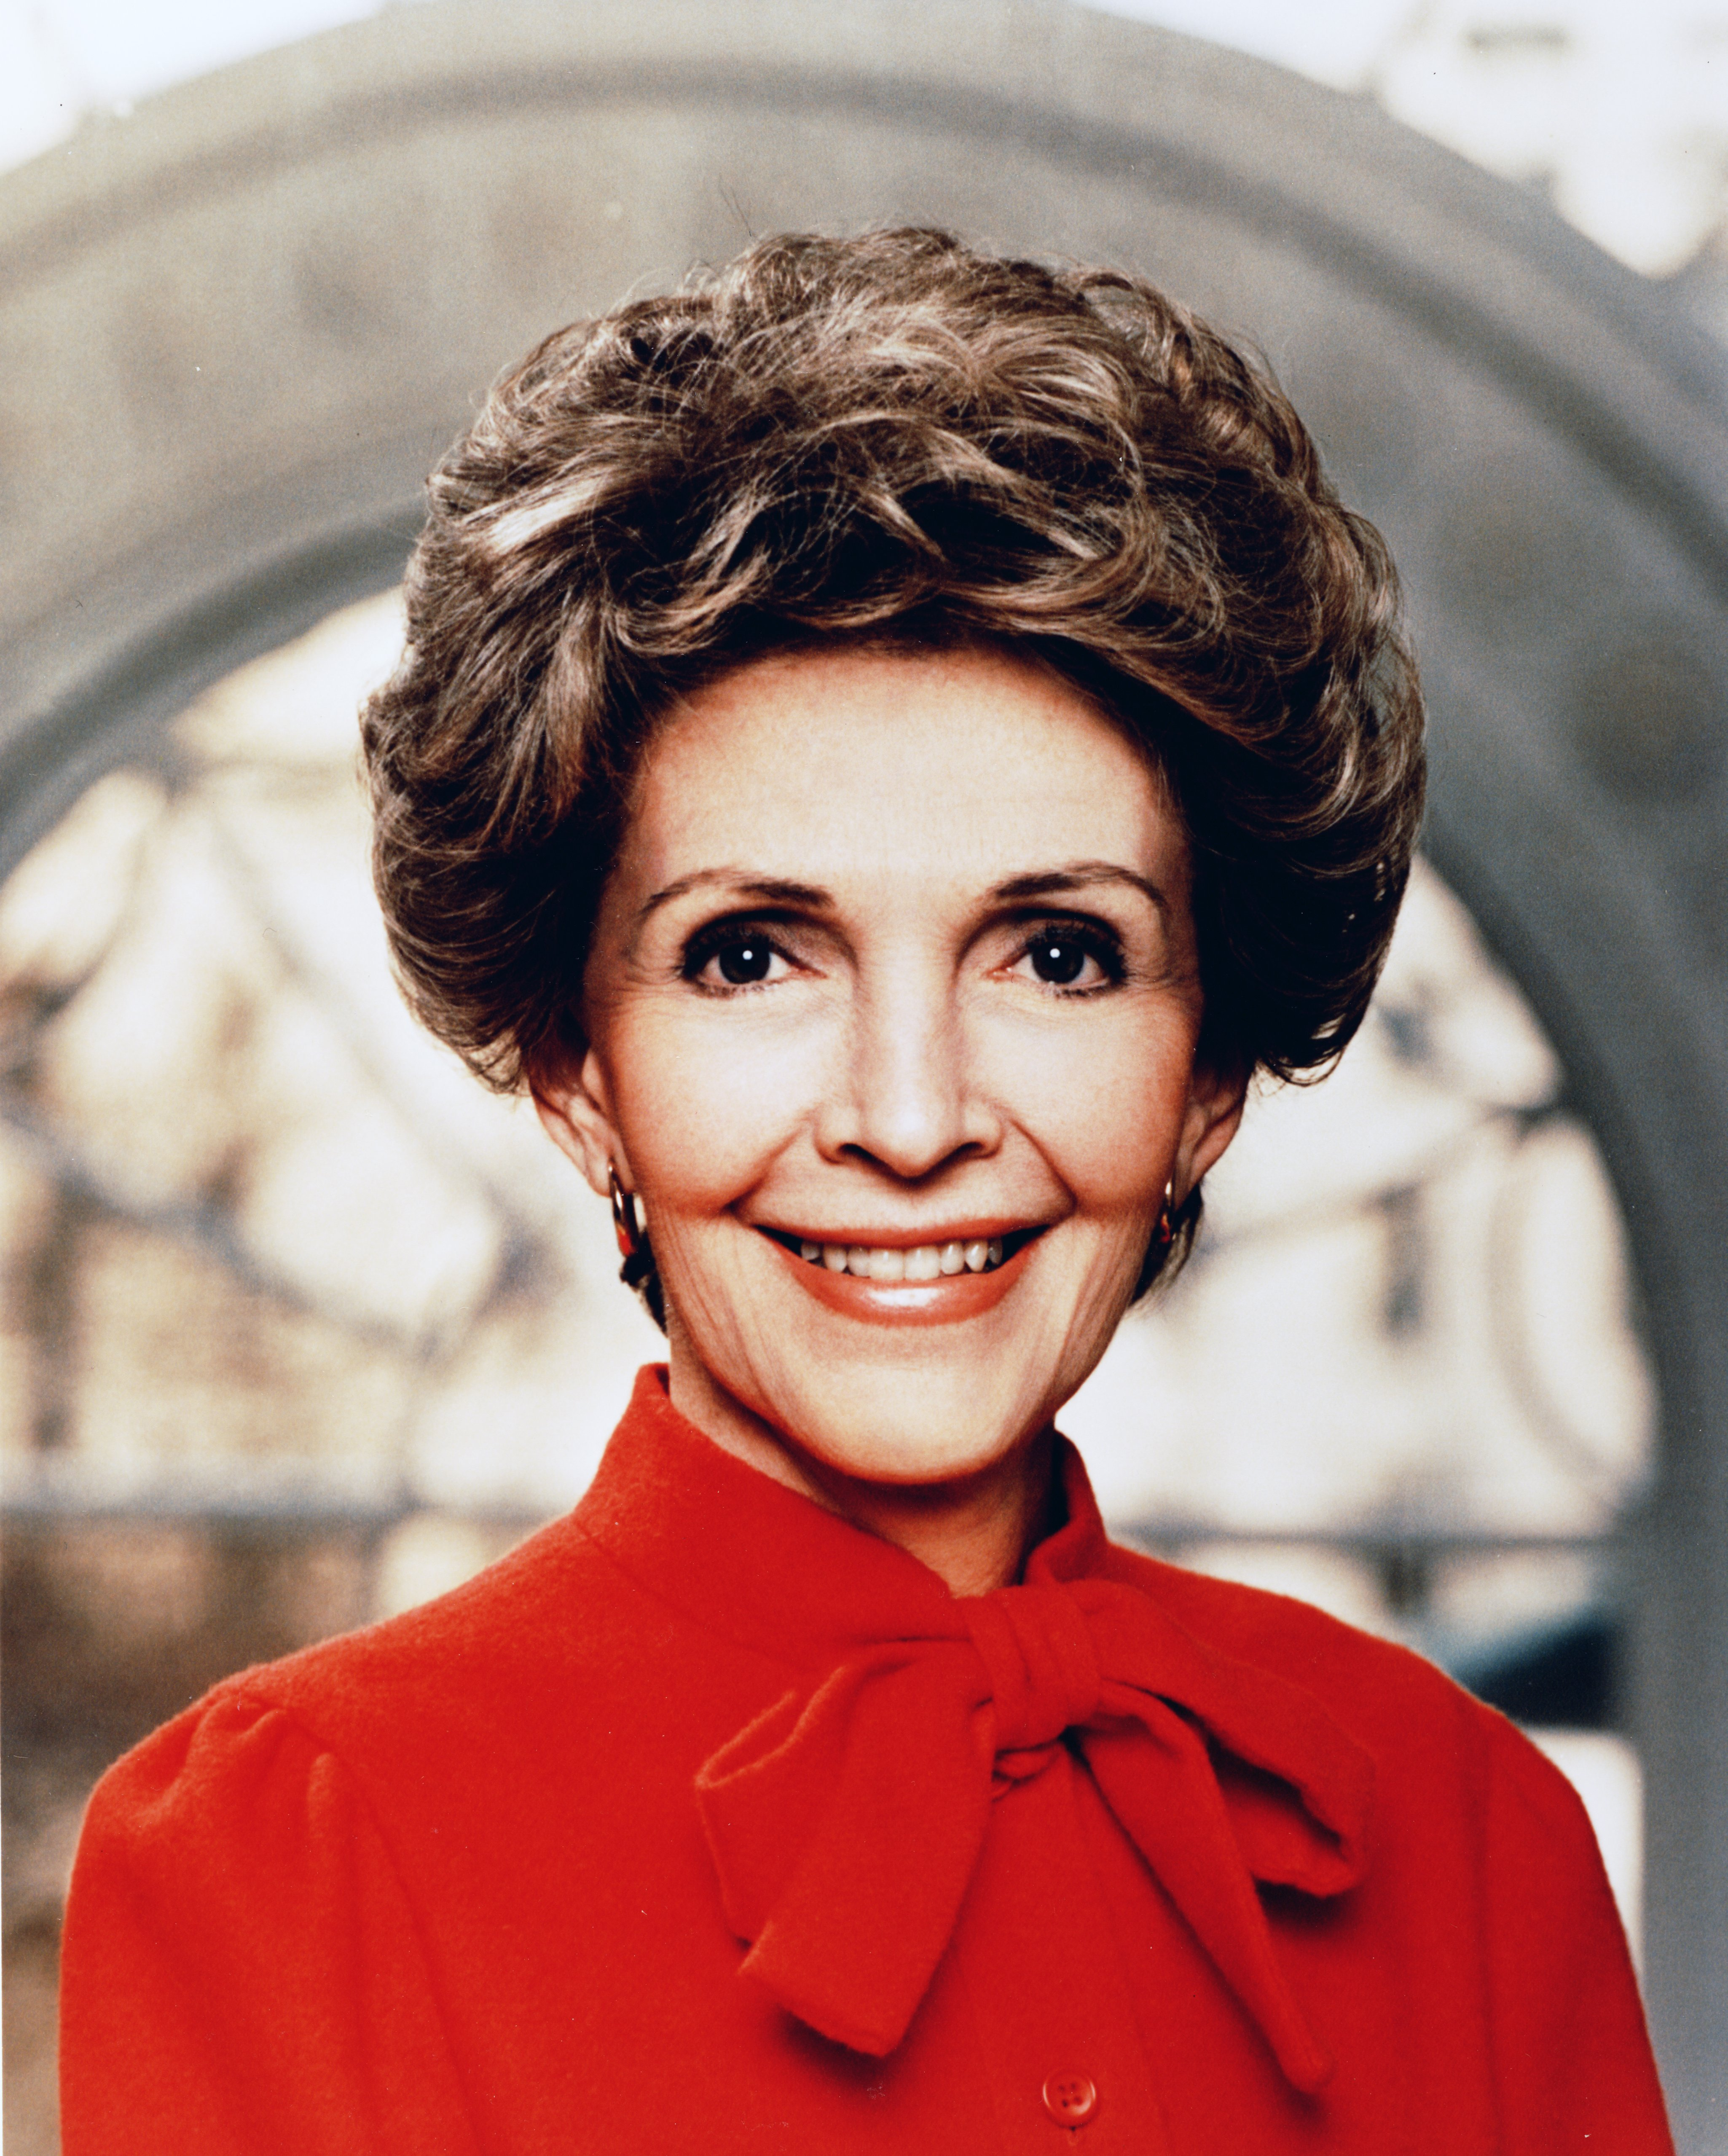 Nancy Davis Reagan (July 6, 1921 - ) widow of the 40th President of the United States, Ronald Reagan,...